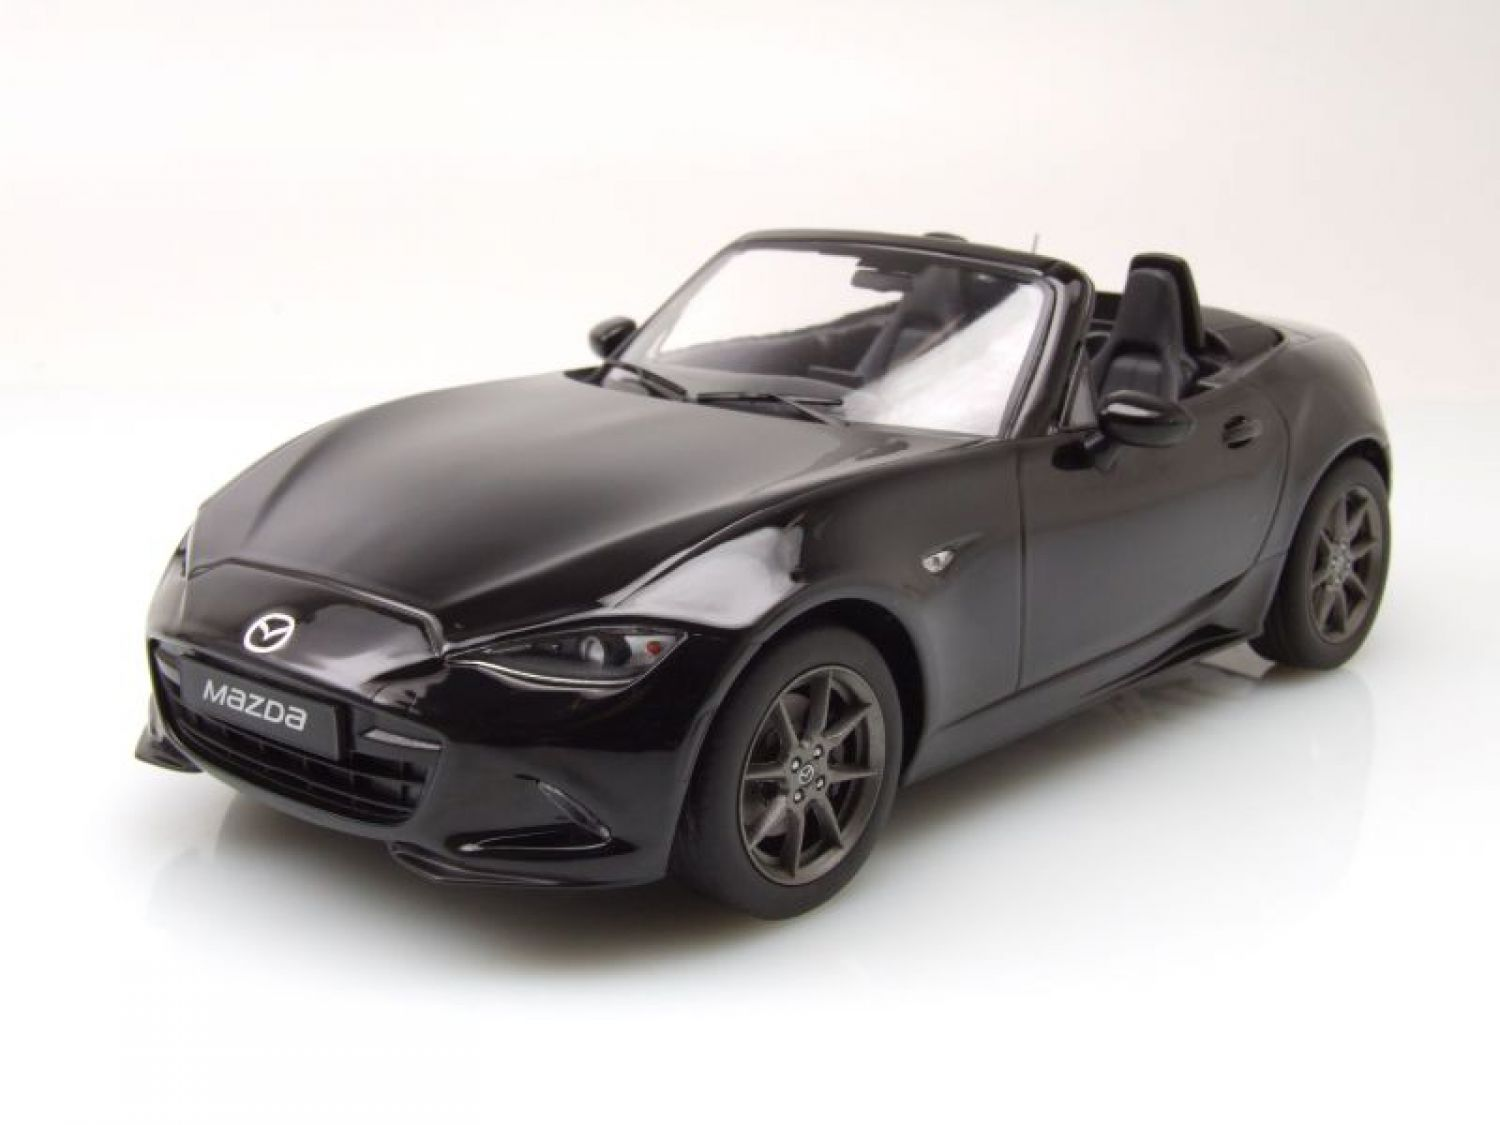 mazda mx 5 cabrio 2015 schwarz modellauto 1 18 triple9 ebay. Black Bedroom Furniture Sets. Home Design Ideas